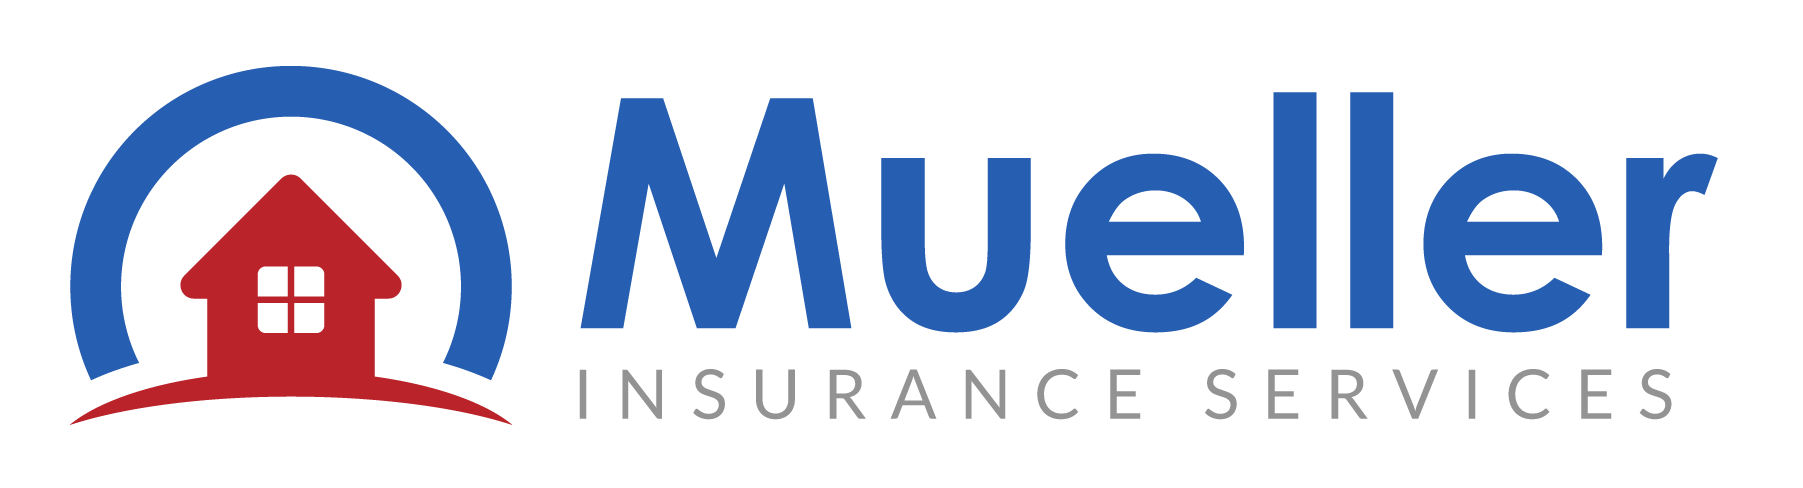 David Mueller is the Ideal Local Insurance Agent in Kirkwood MO